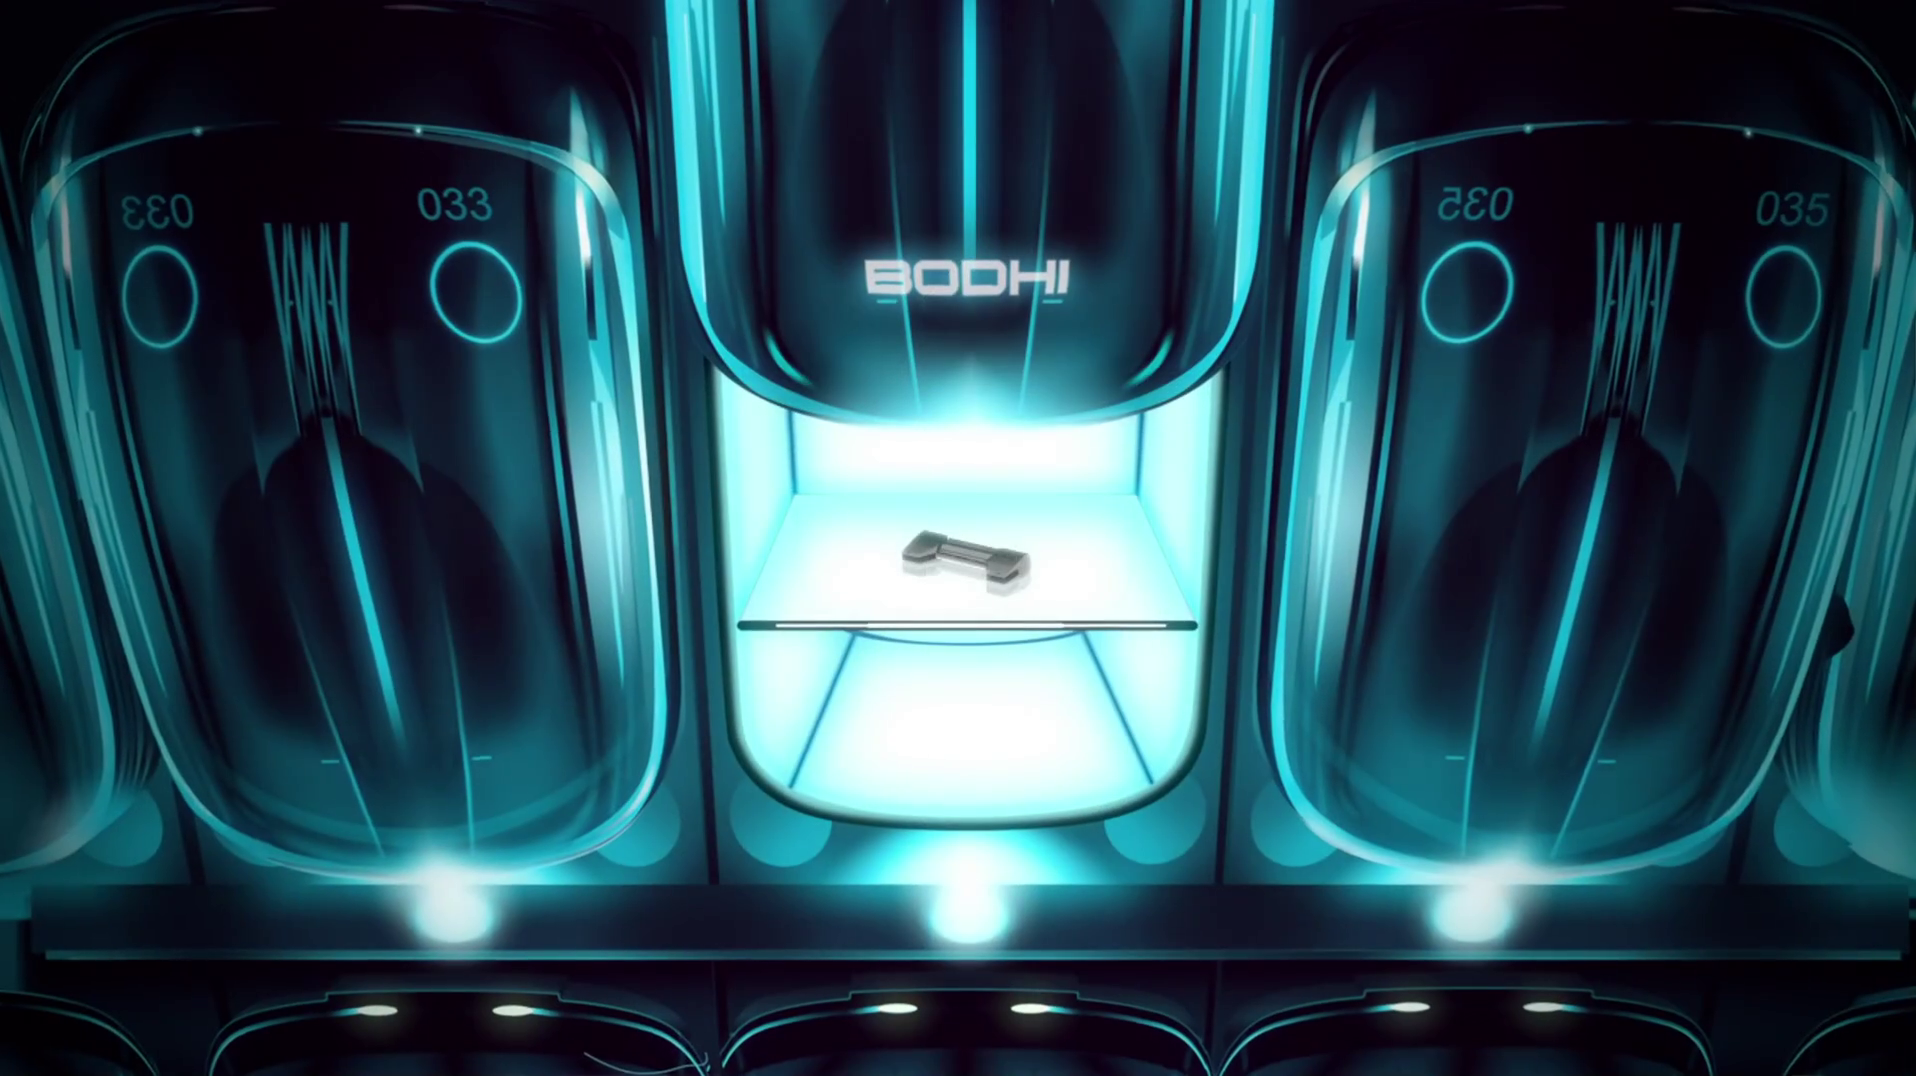 Tron_2019-08-04-23h06m14s612.png